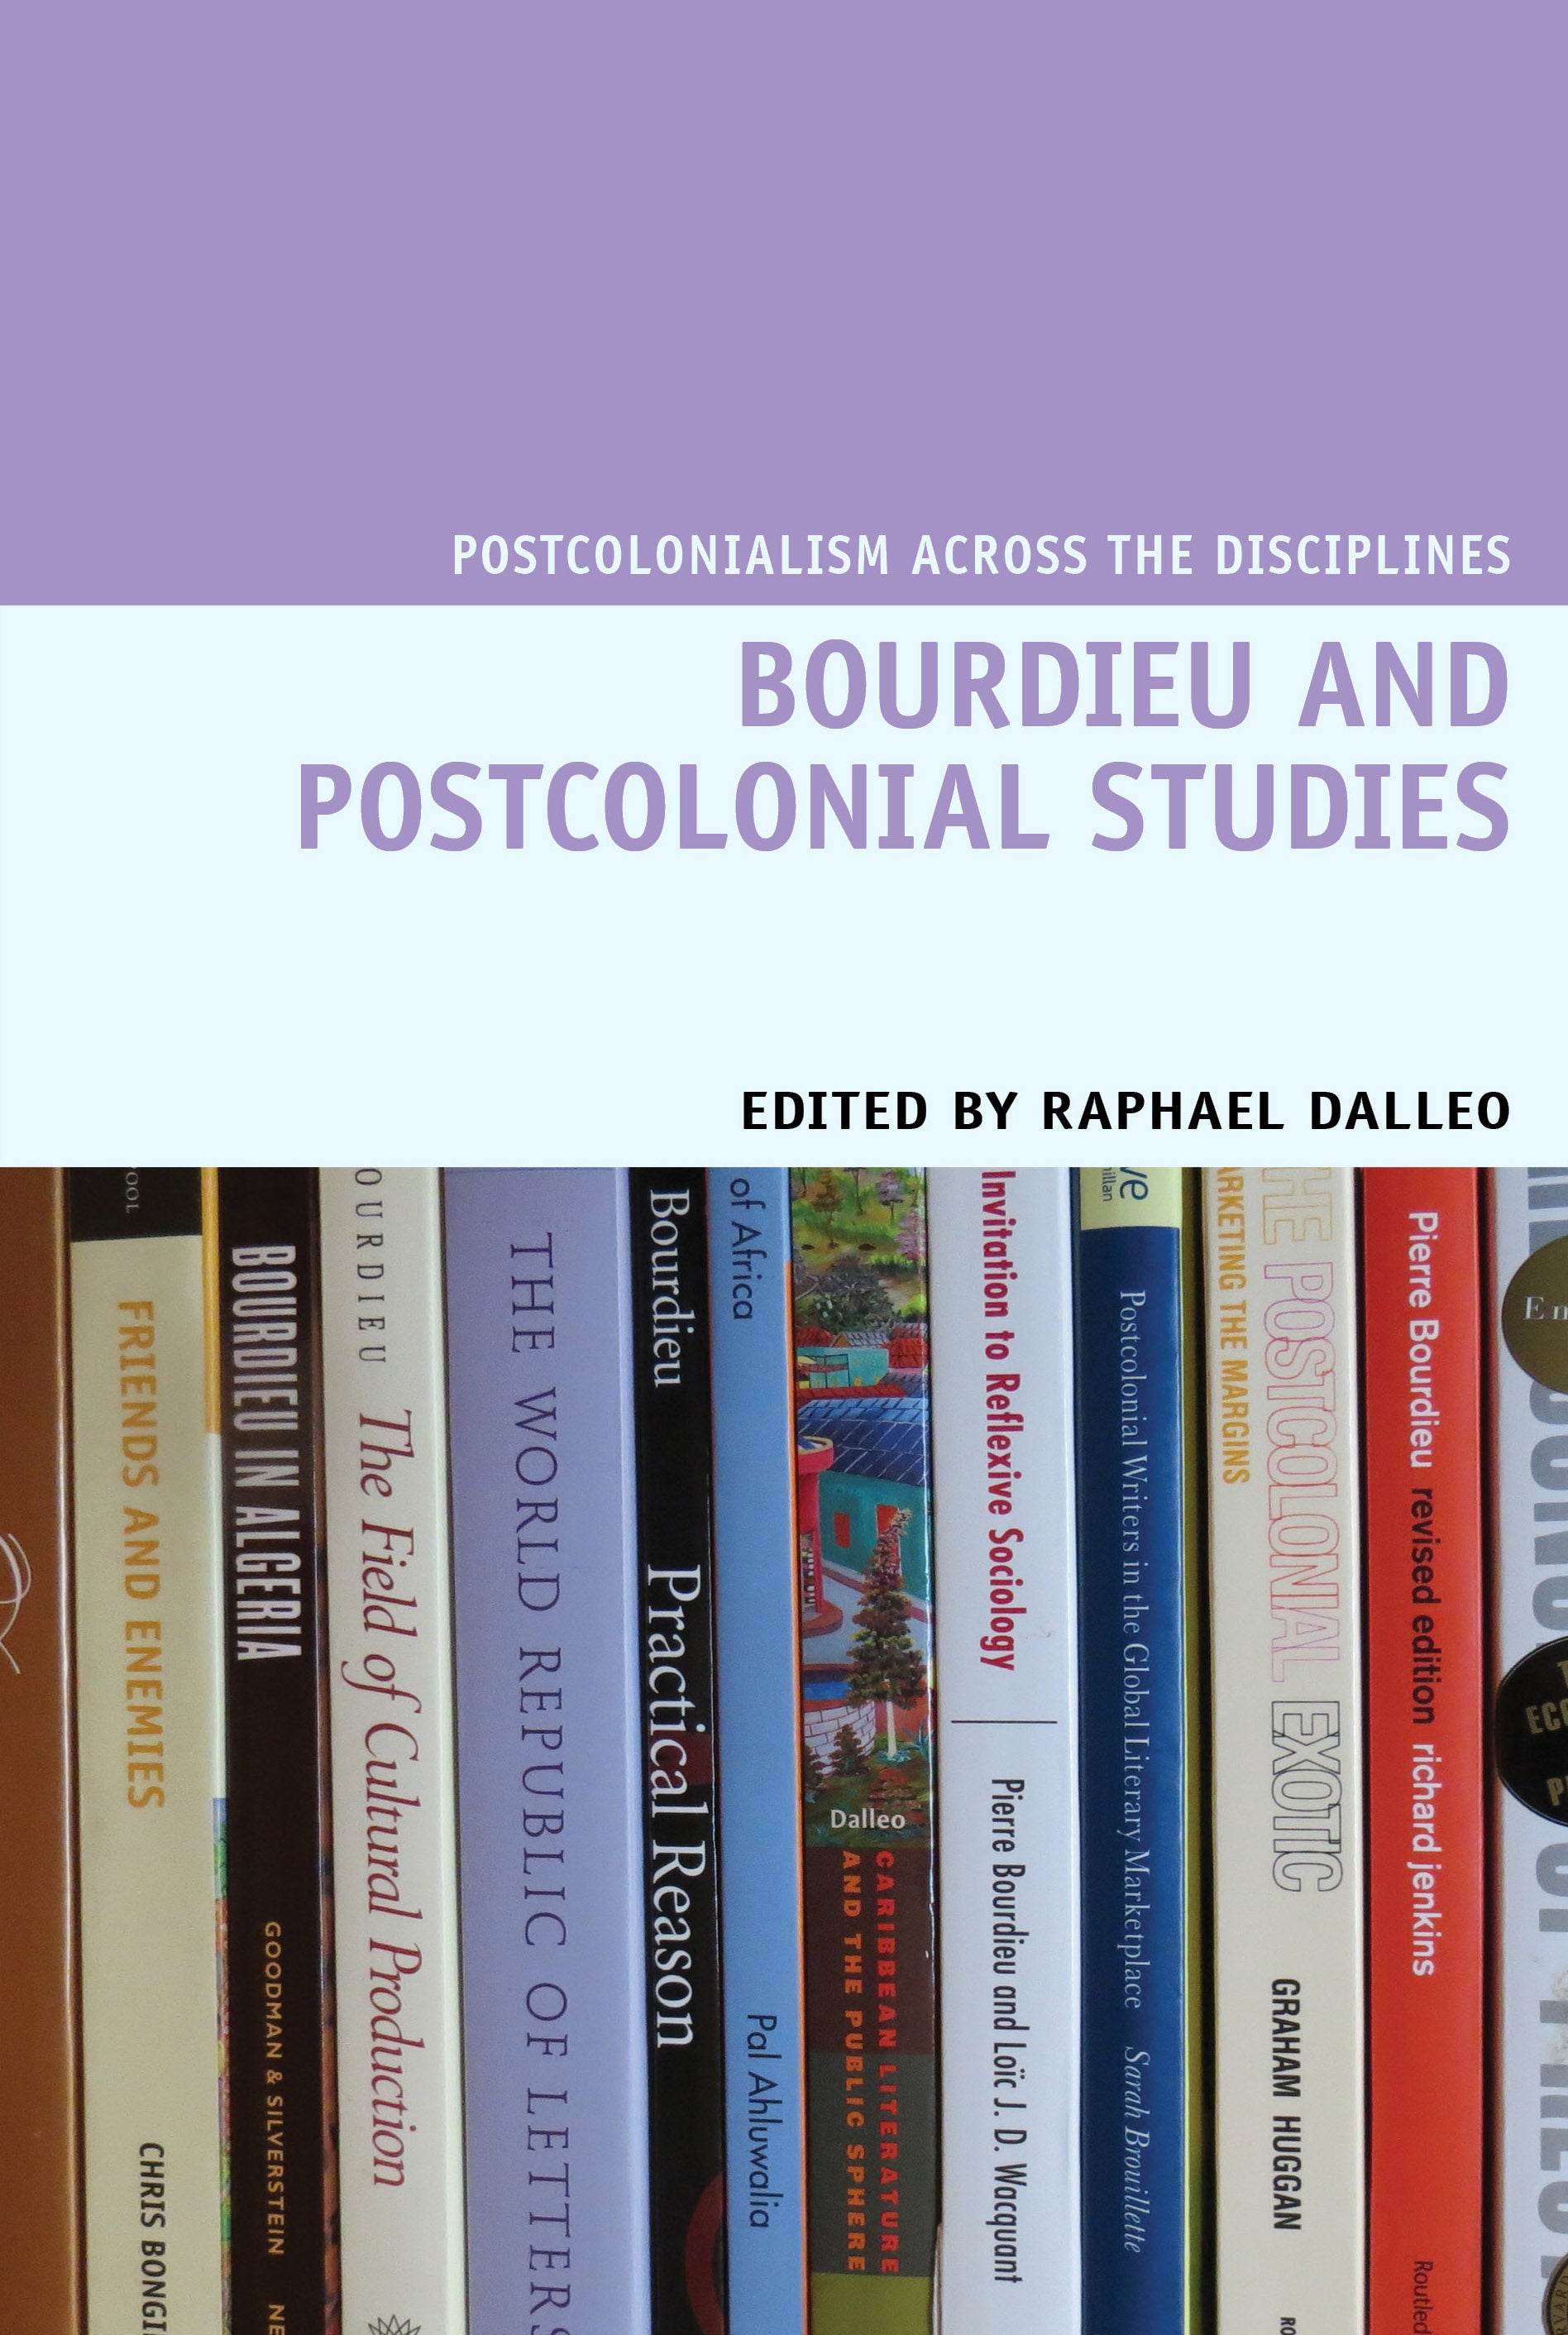 Bourdieu and Postcolonial Studies